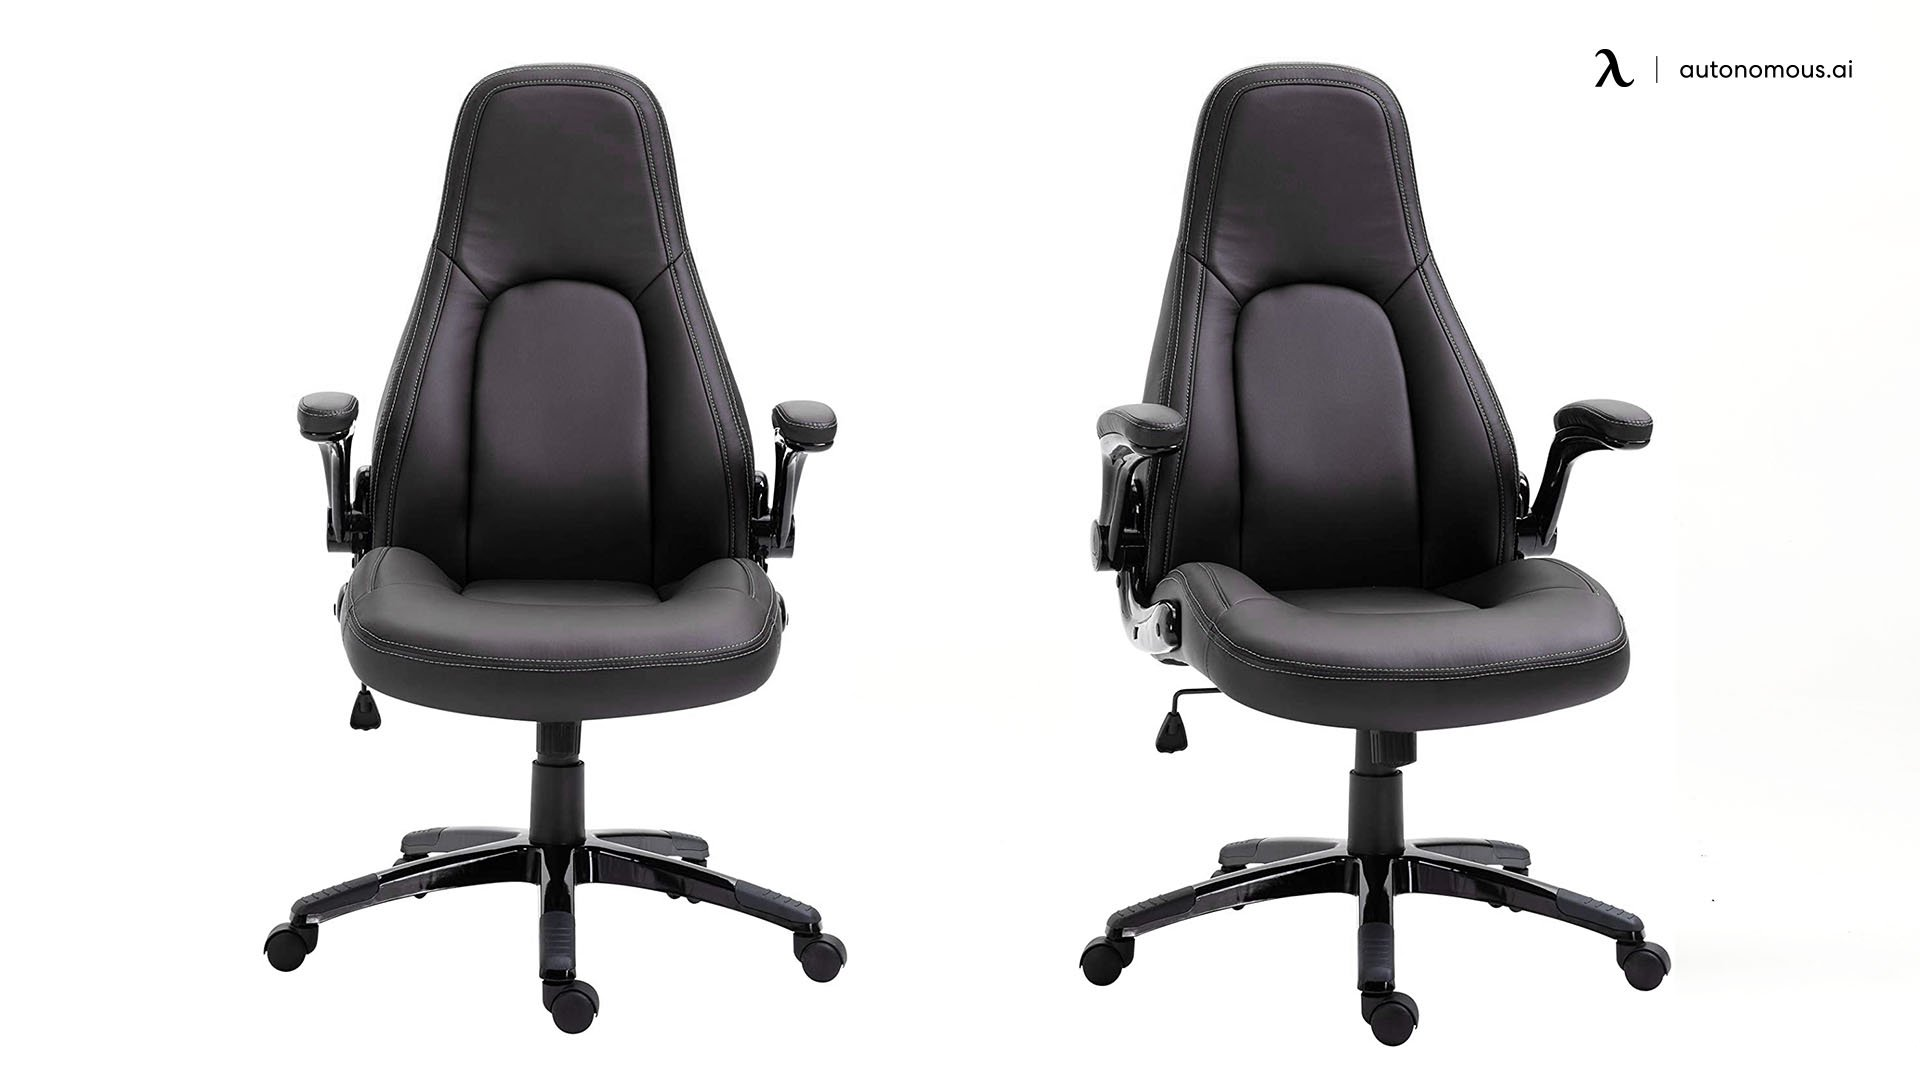 Vinsetto gaming office chair